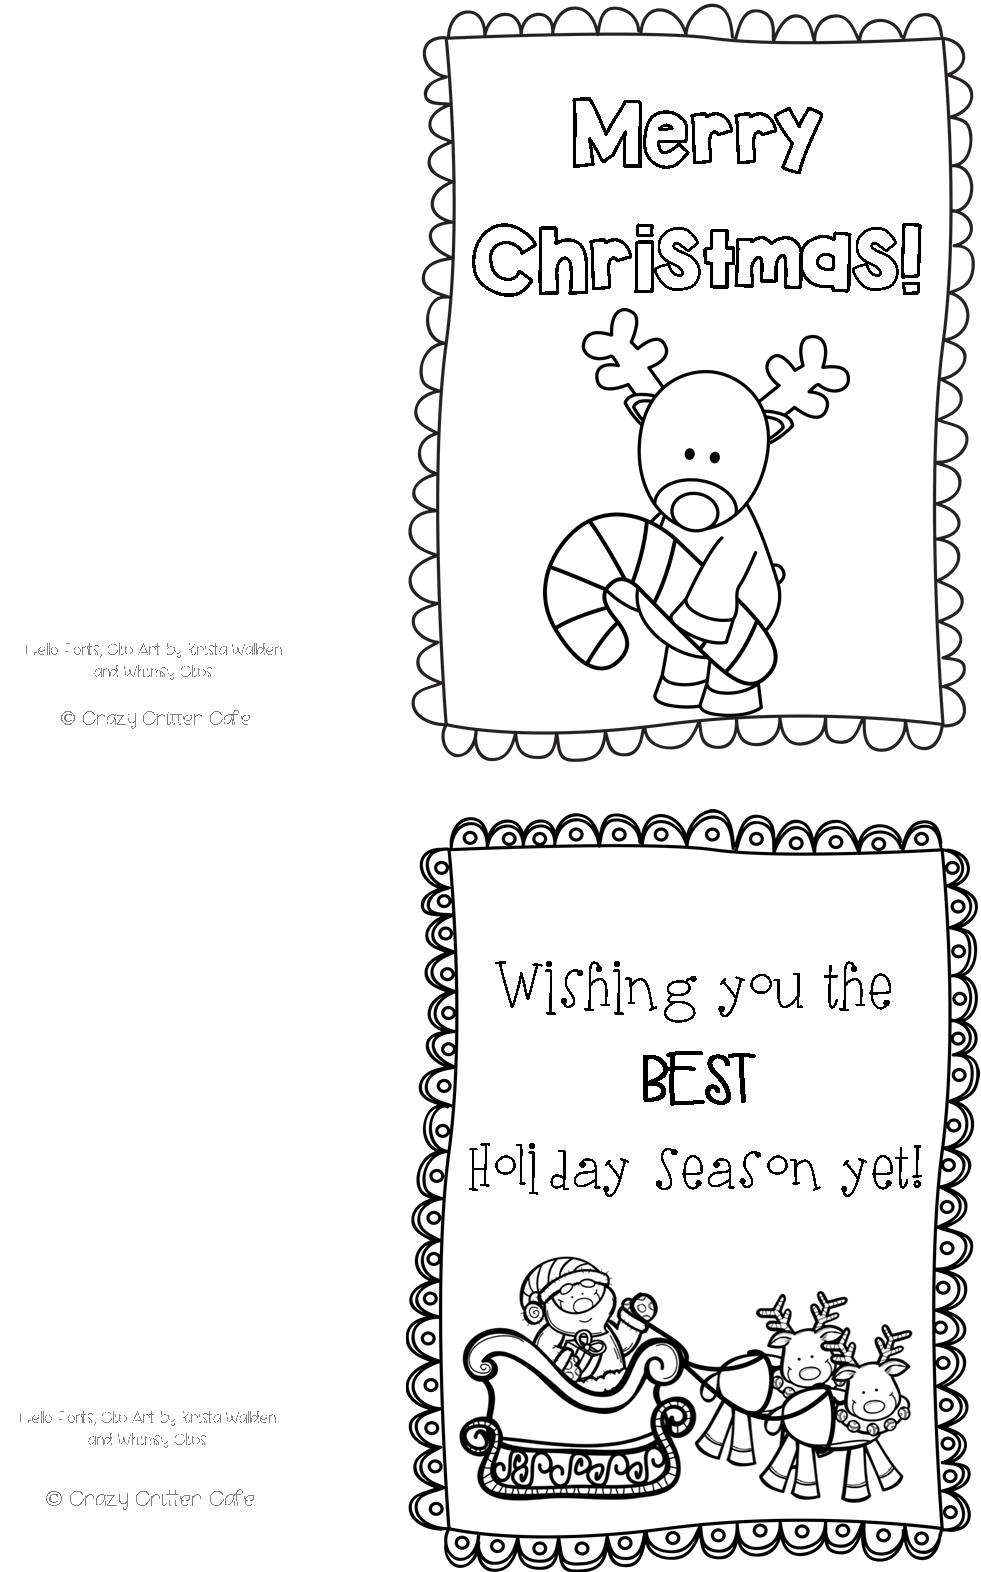 Crazy Critter Cafe : Freebie #3 Color Your Own Christmas Cards